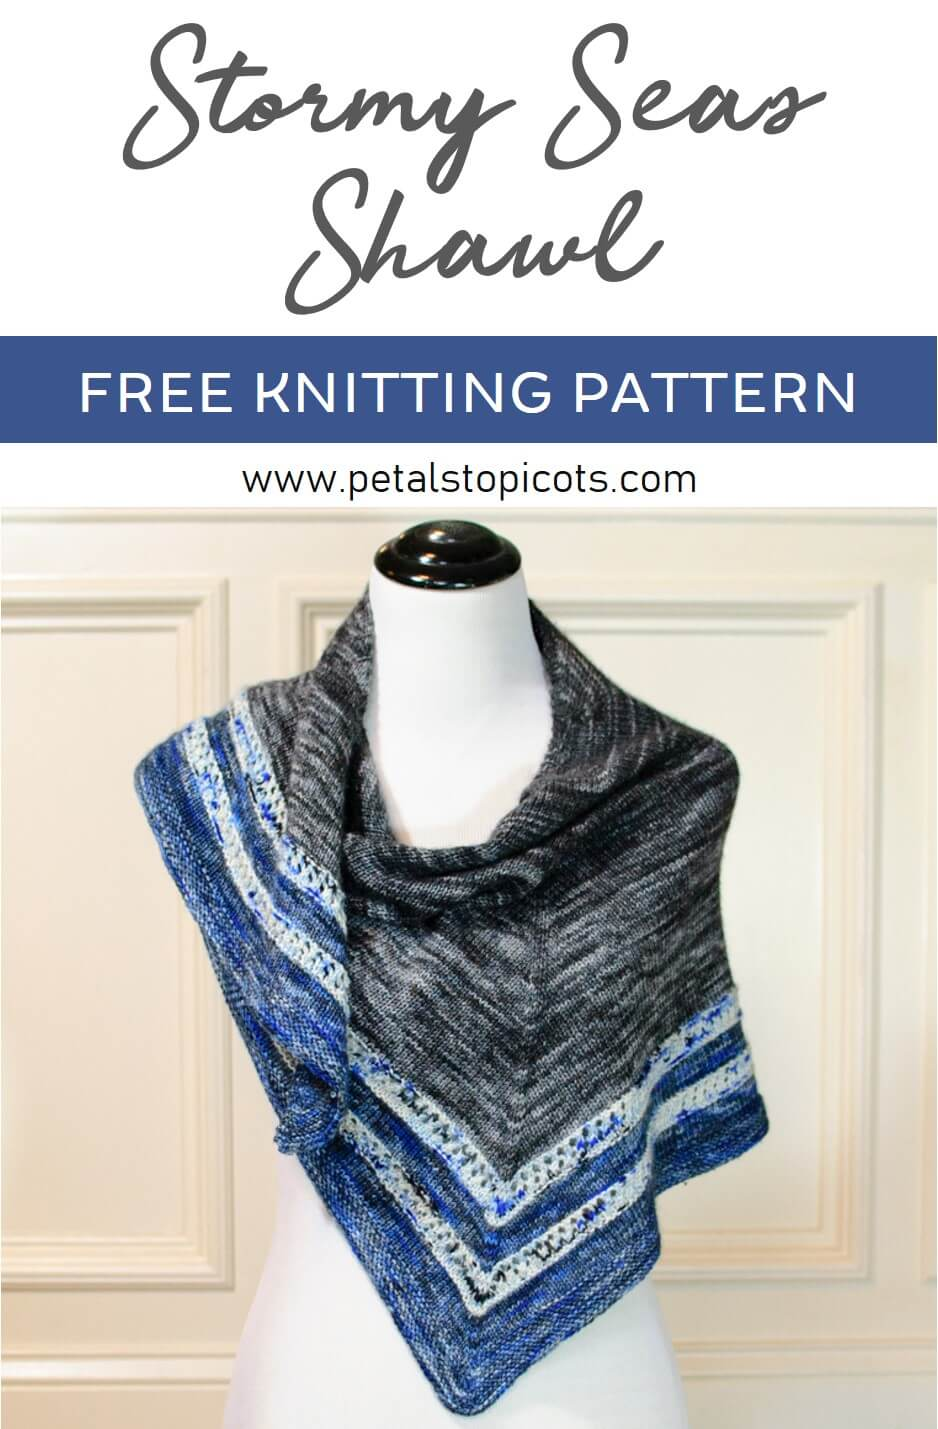 Stormy Seas Knit Shawl Pattern Petals To Picots Crochet Patterns With Diagrams Free The Is An Easy A Unique Design